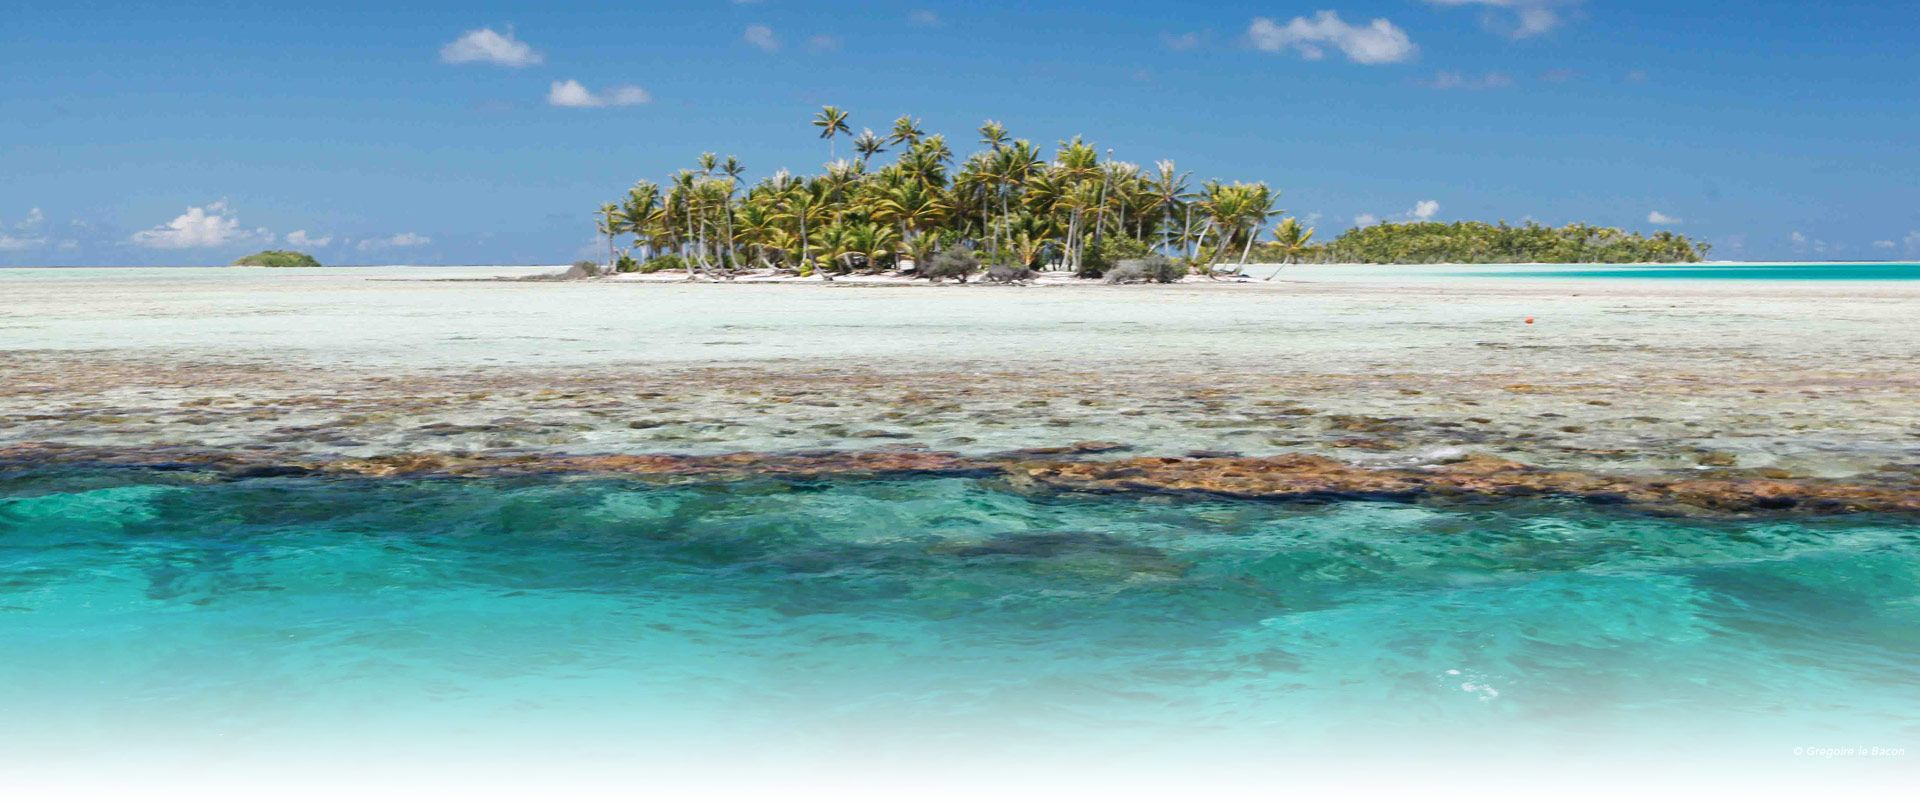 Tahiti Tourisme - Official Web Site | The islands of